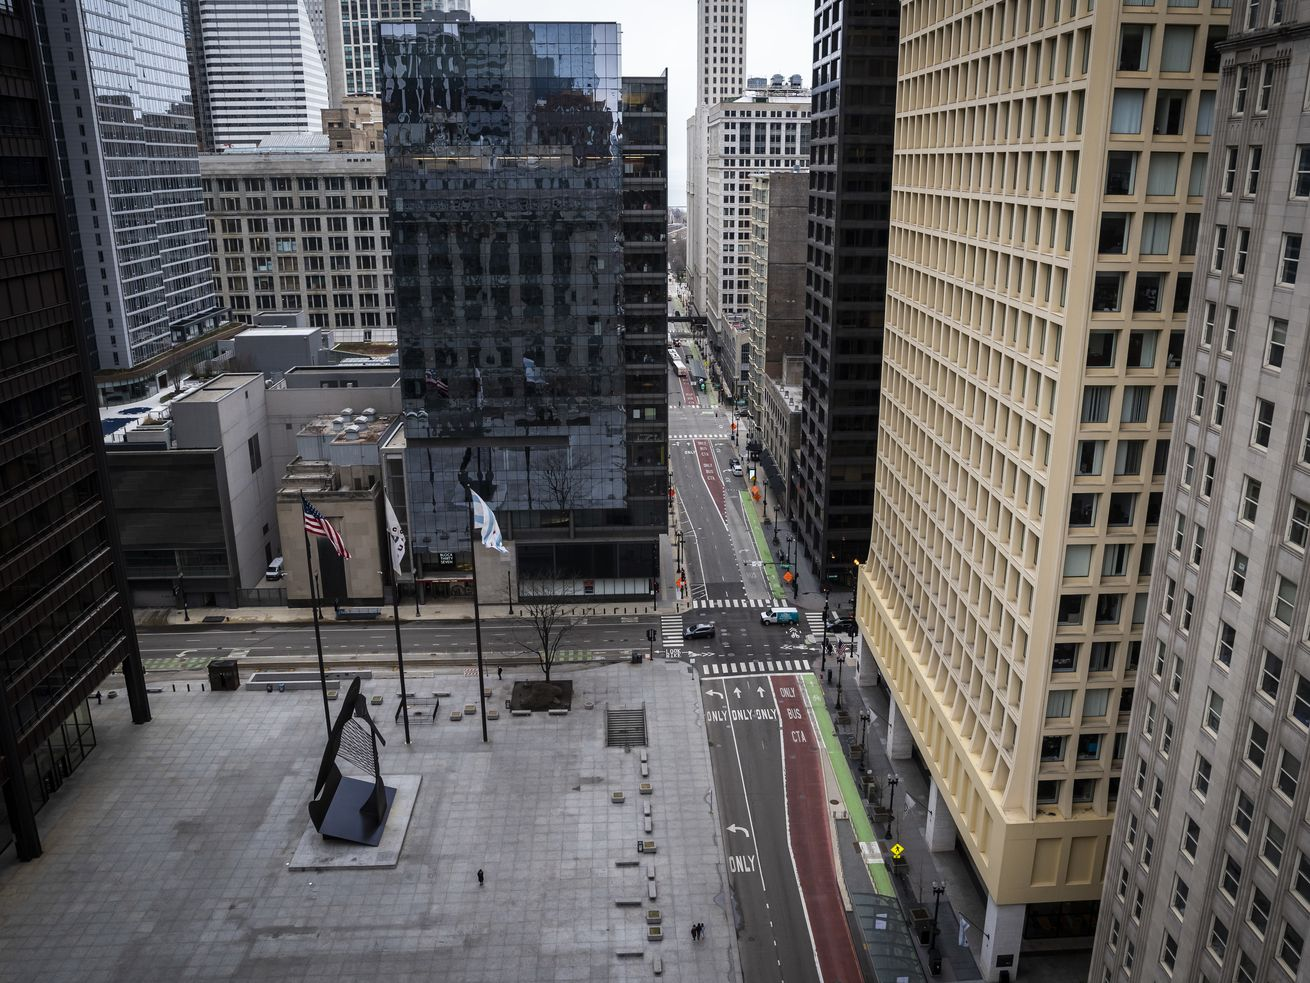 Downtown workforce will return to a 'new normal,' top mayoral aide says